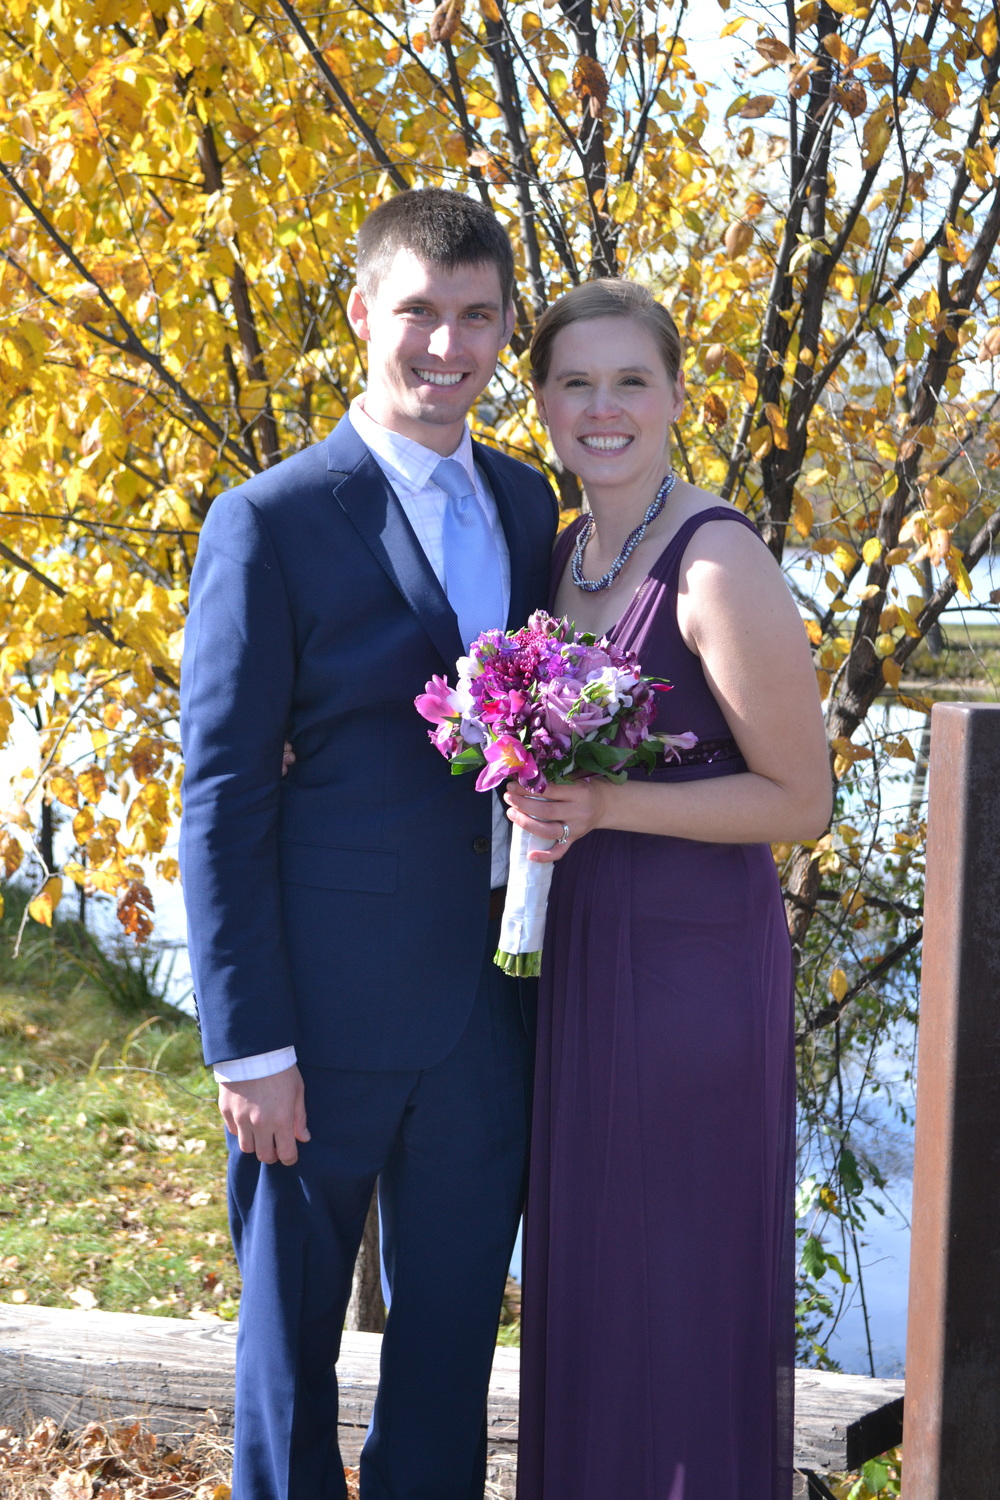 Erica and Shawn's wedding - October 18, 2015